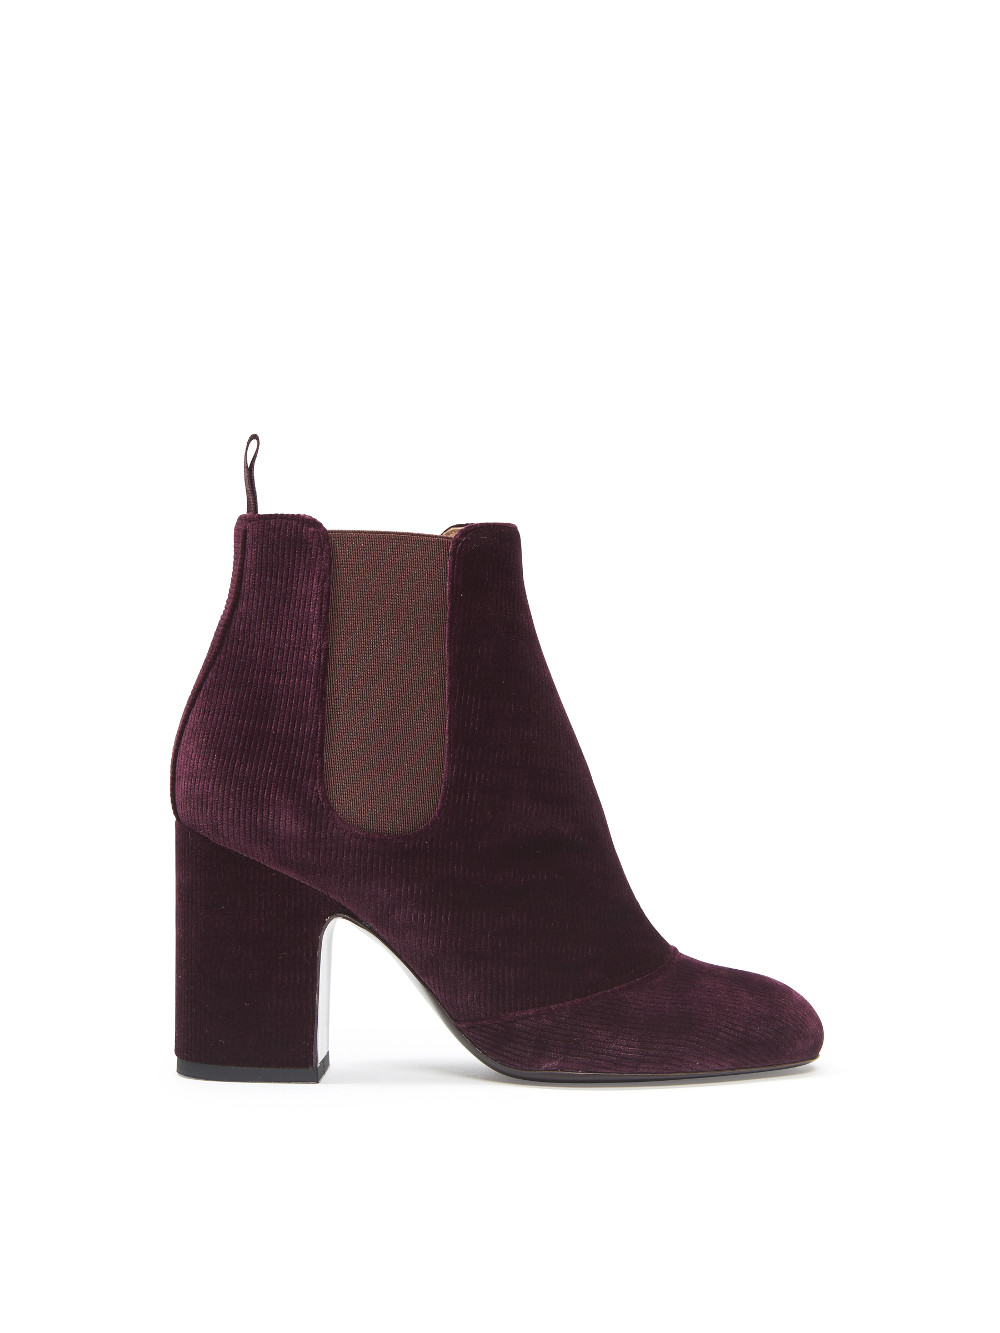 Bottines Mia - Laurence Dacade